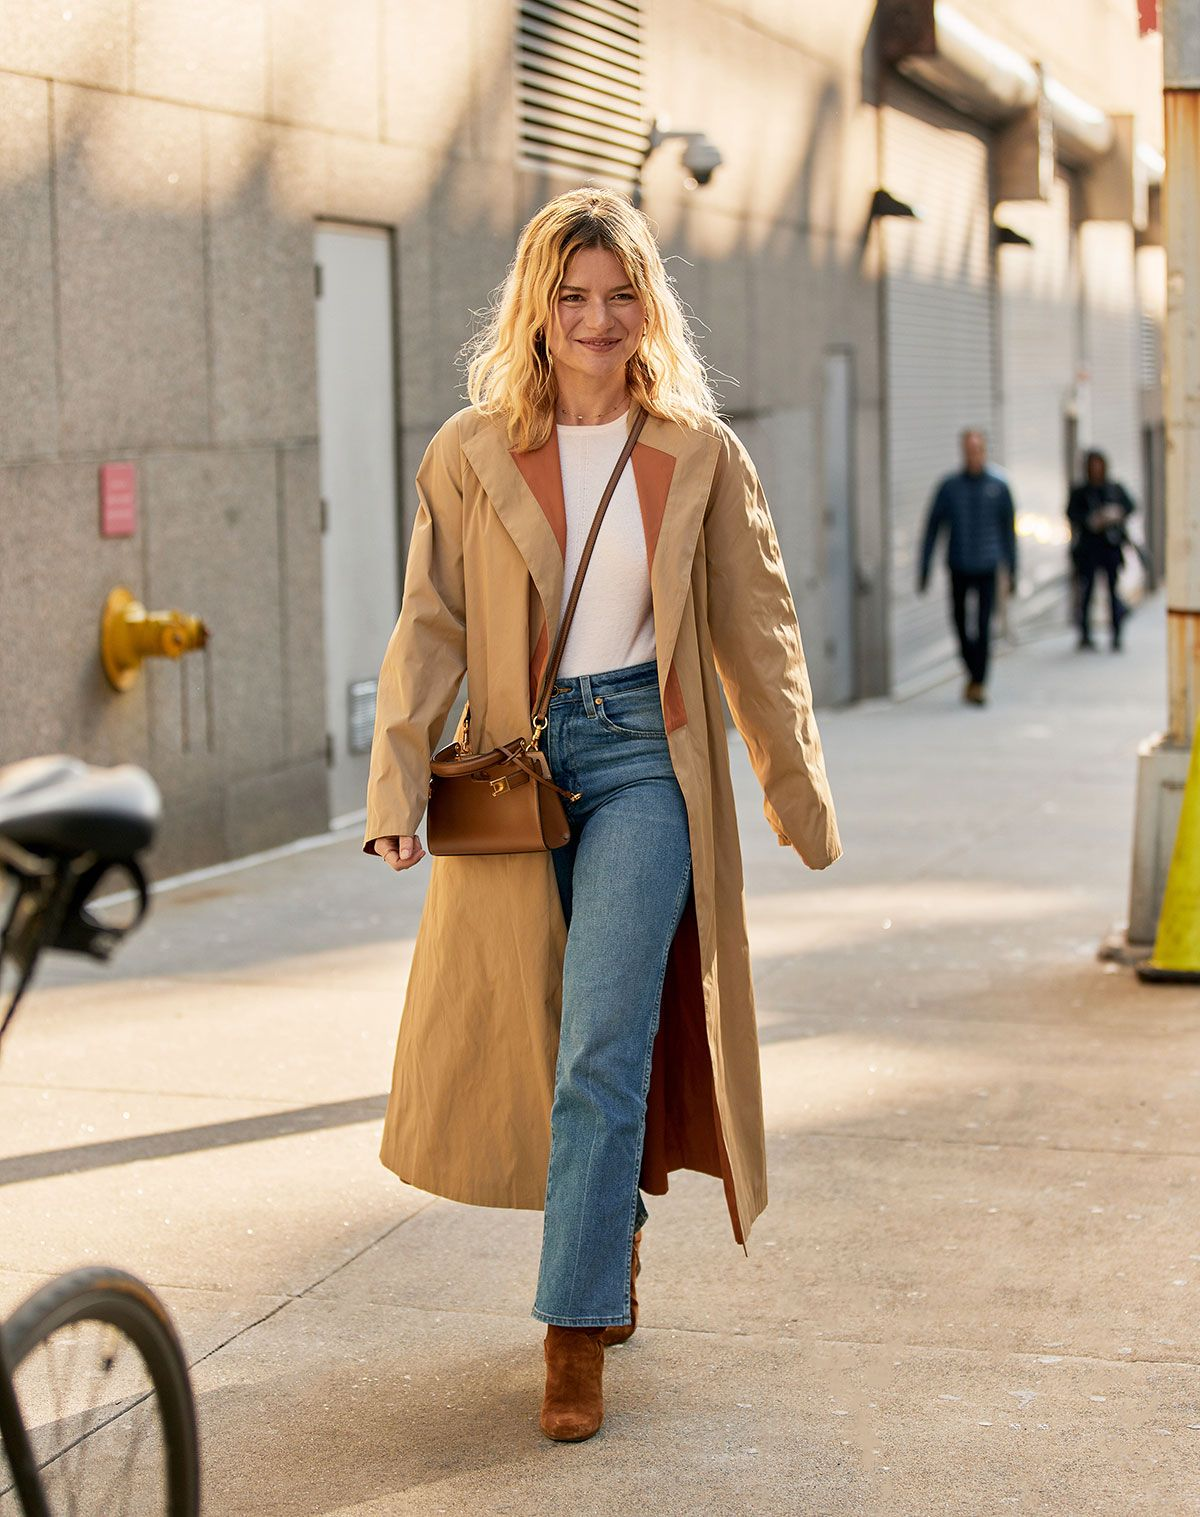 My Friend Asked What to Wear With Flare Jeans, and I Suggested These 6 Basics 17